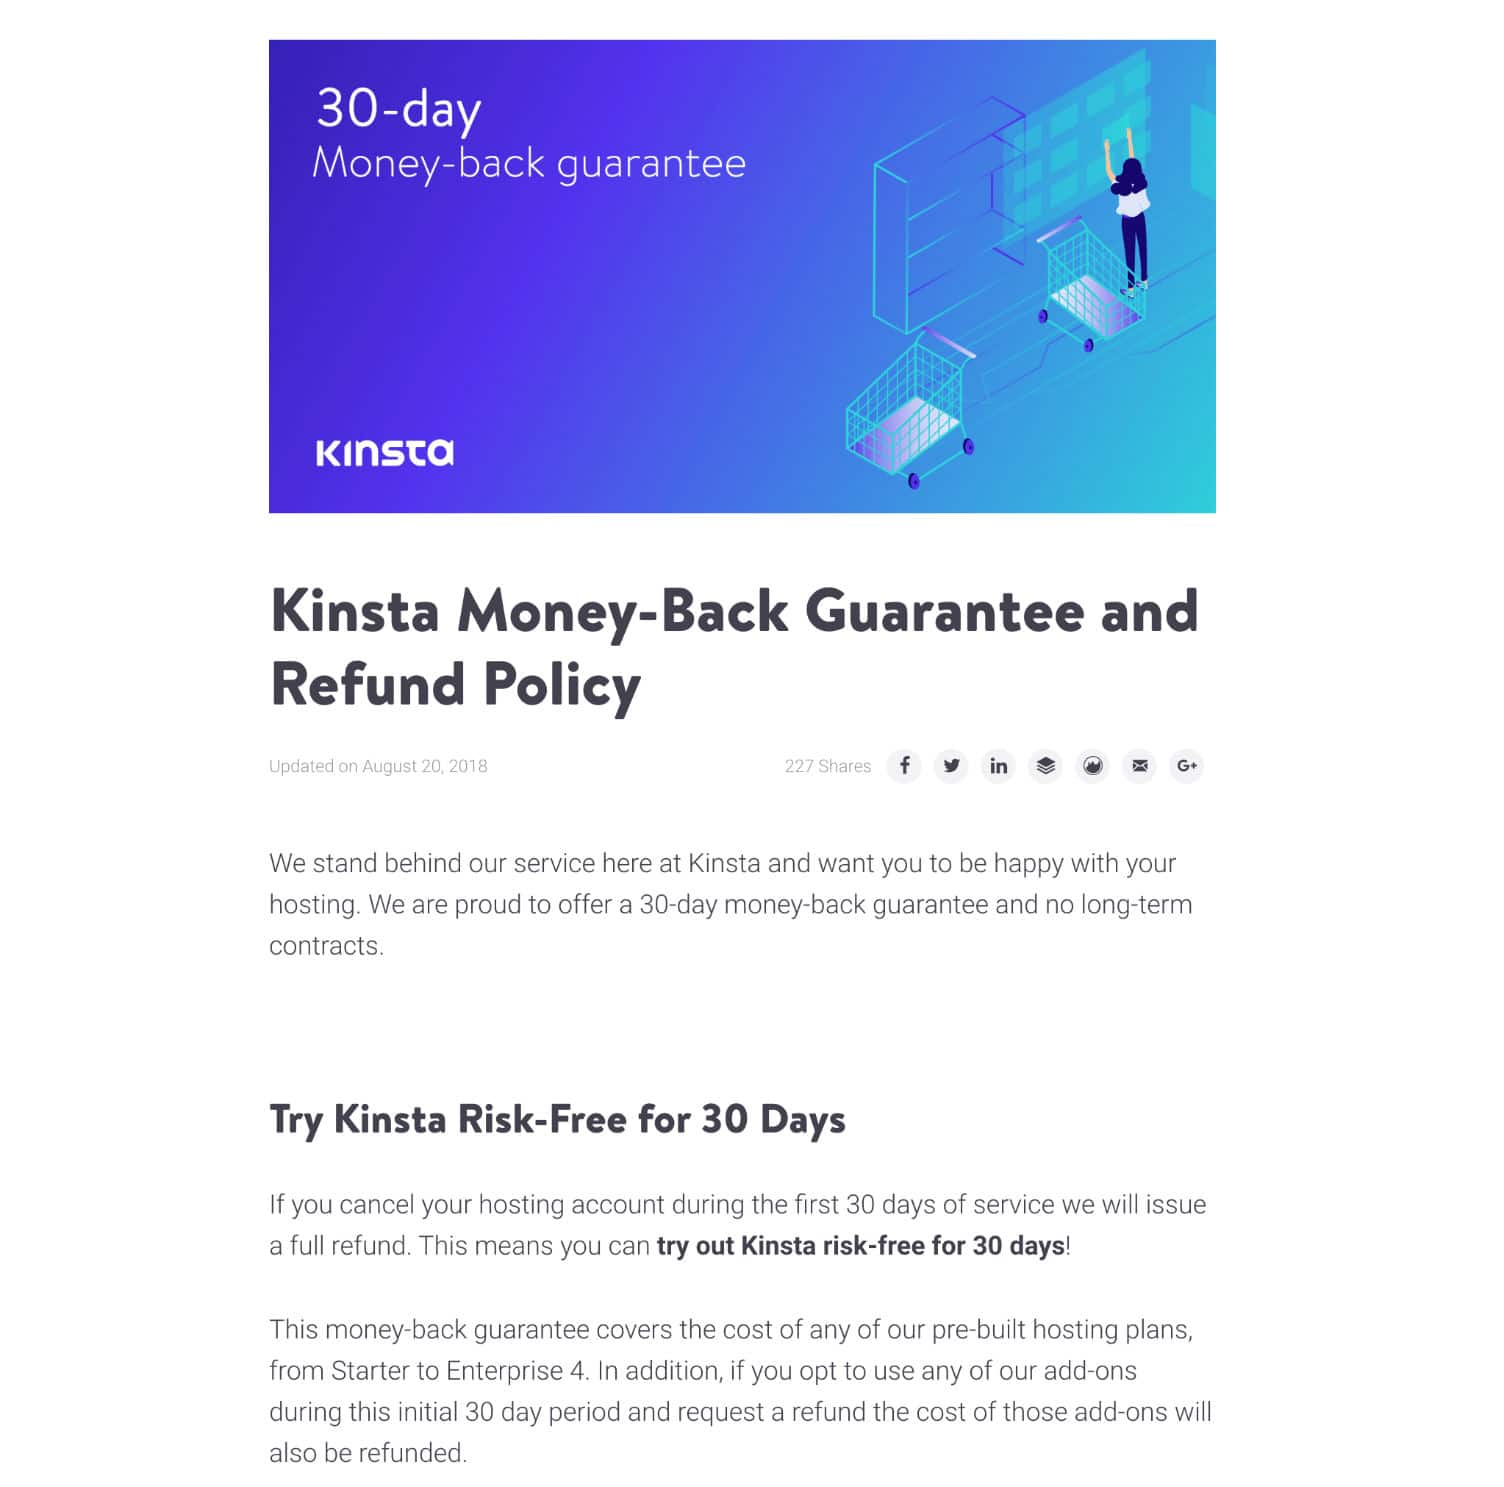 Kinsta refunds